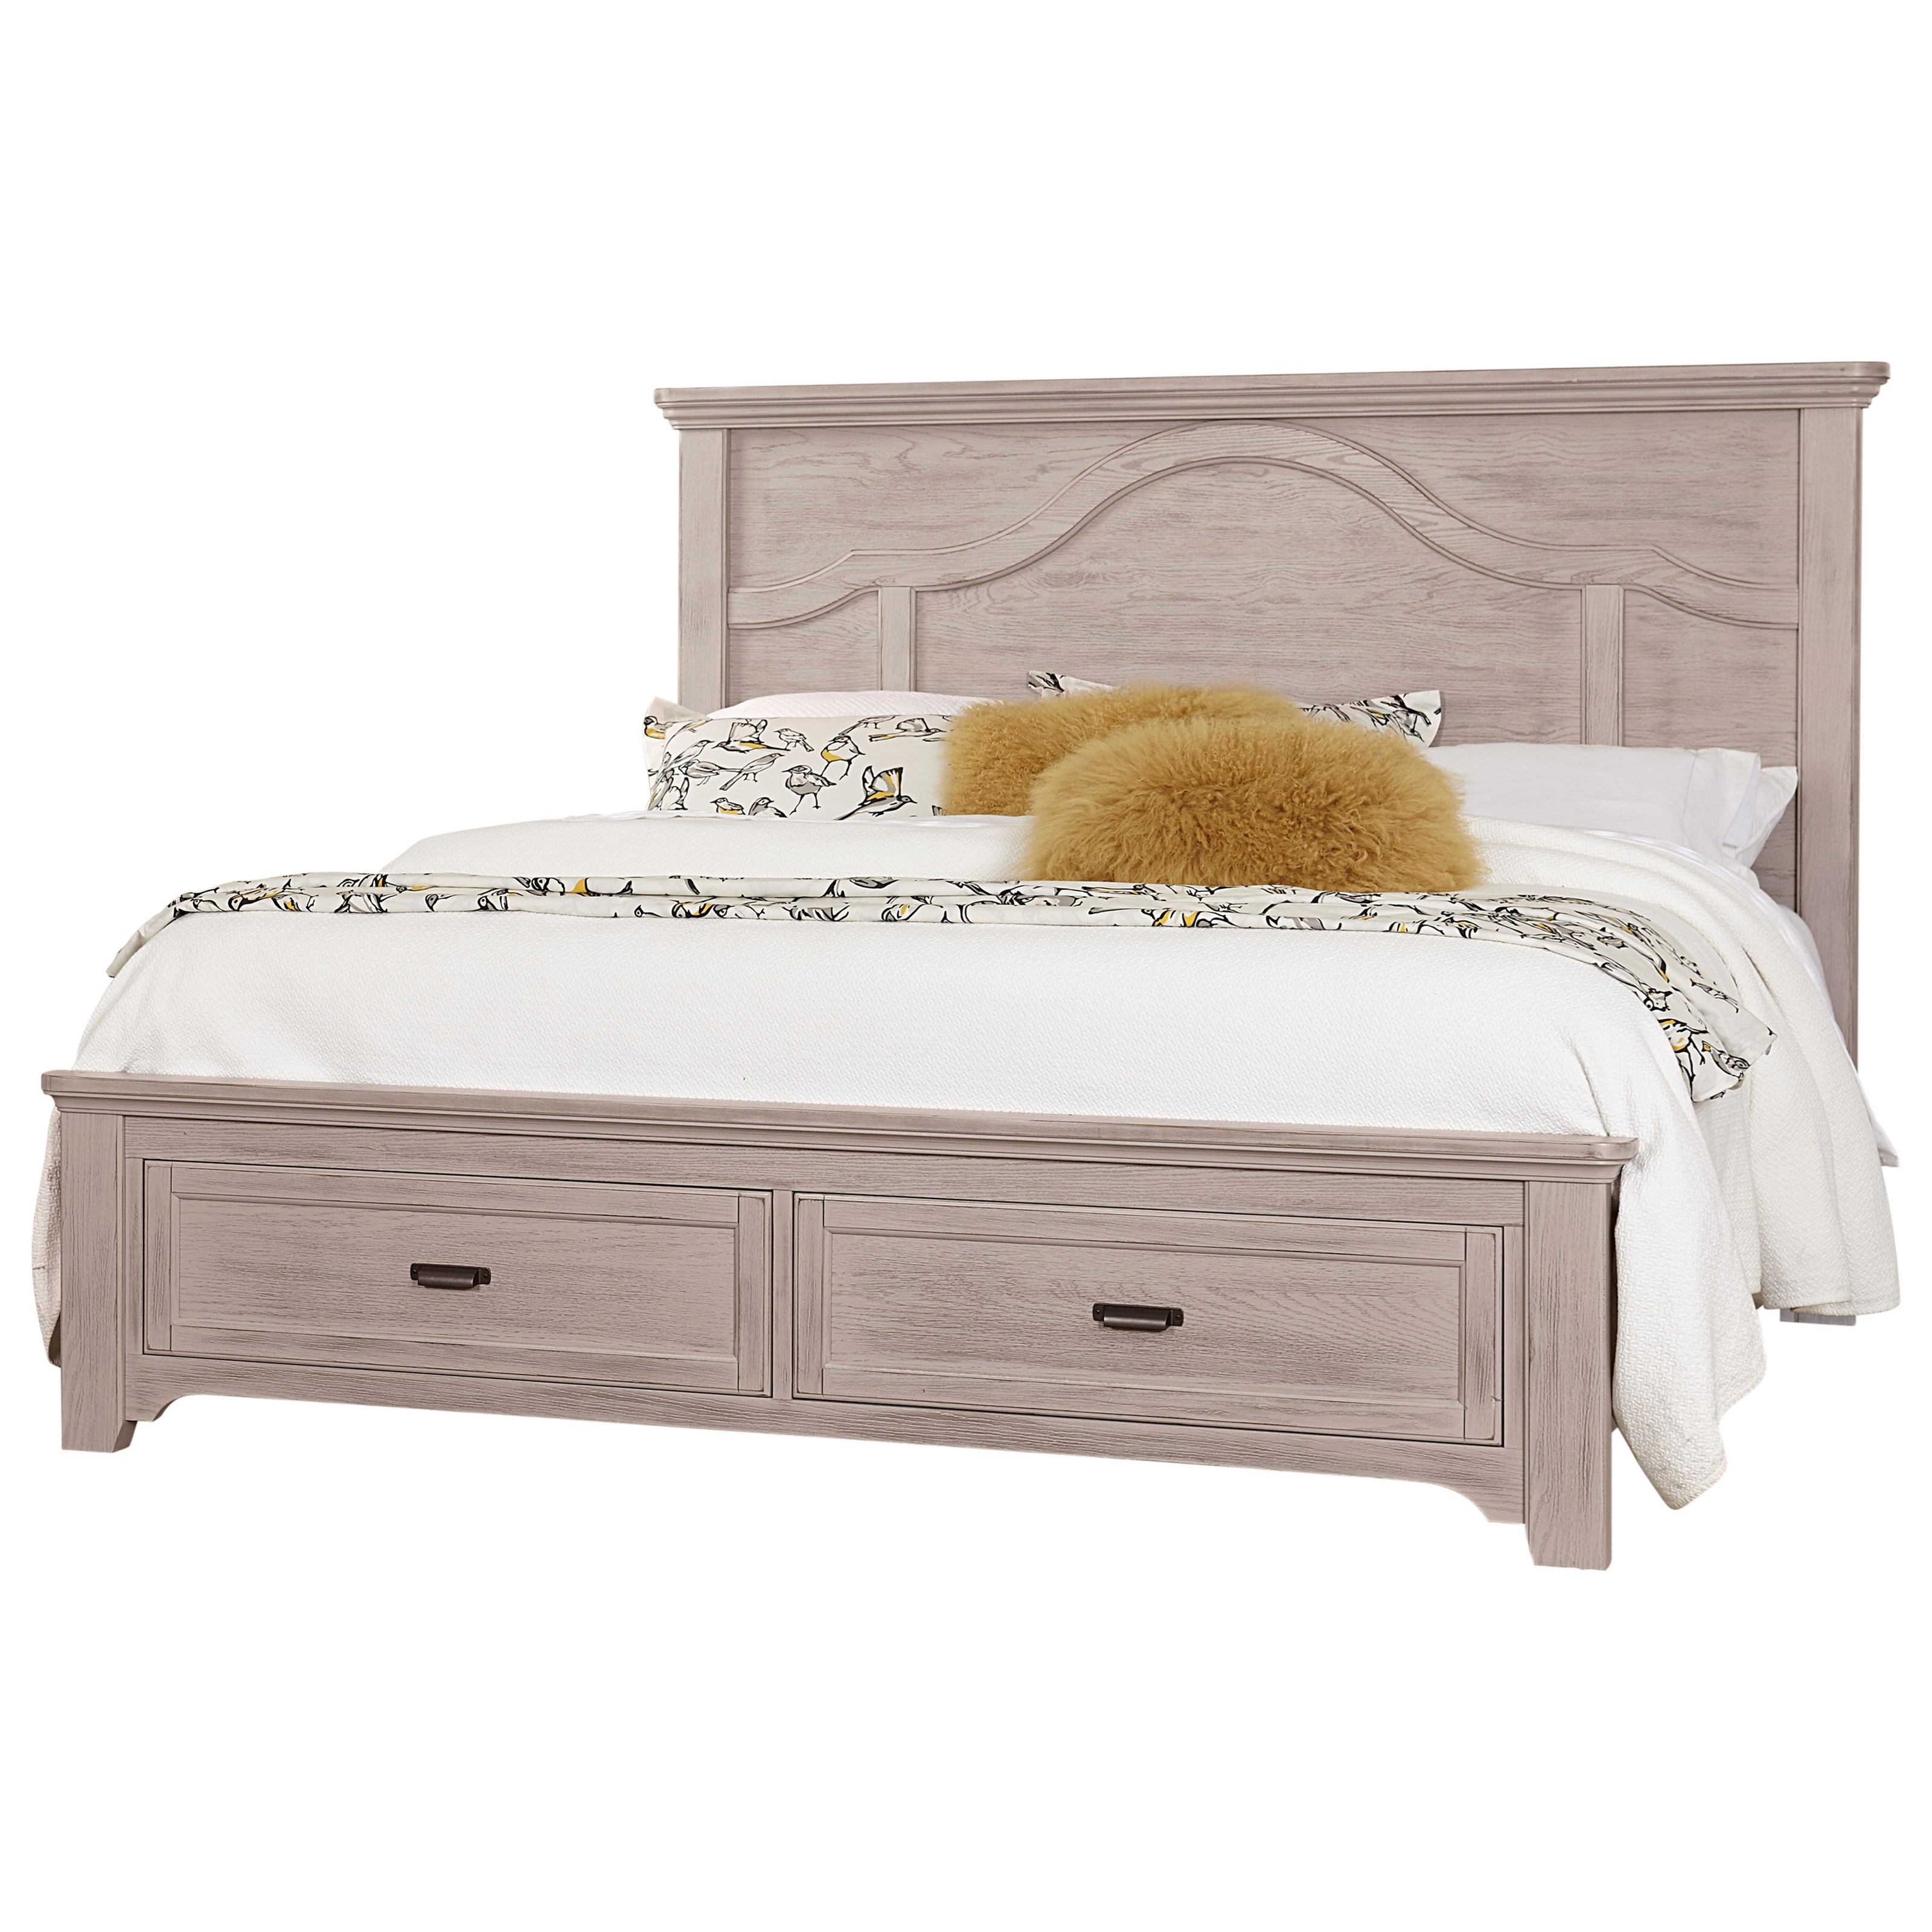 Bungalow Queen Mantel Storage Bed by Vaughan-Bassett at Crowley Furniture & Mattress